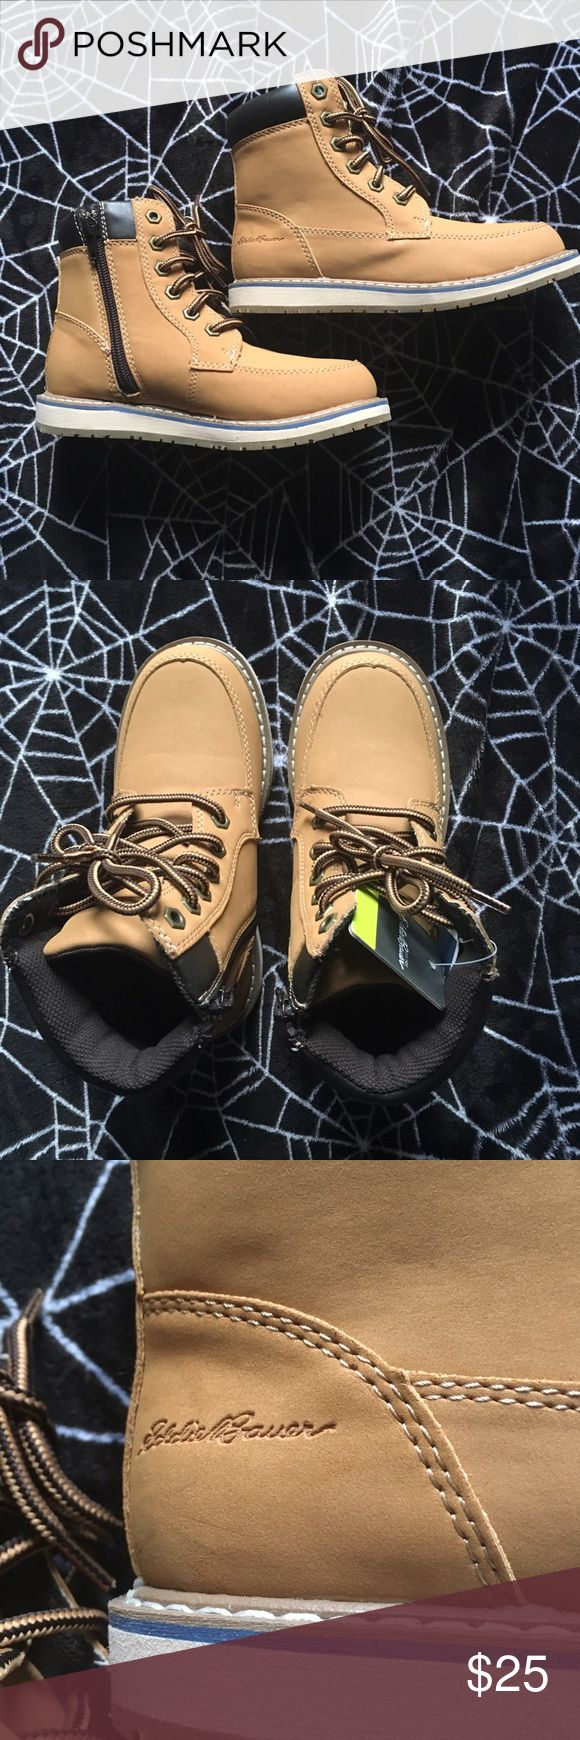 NWT Eddie Bauer Tan Boots Kids Sz 1 NWT Eddie Bauer brand kids shoes. They are a timberland style boot with a zip for easy access. Size 1. Eddie Bauer Shoes Boots